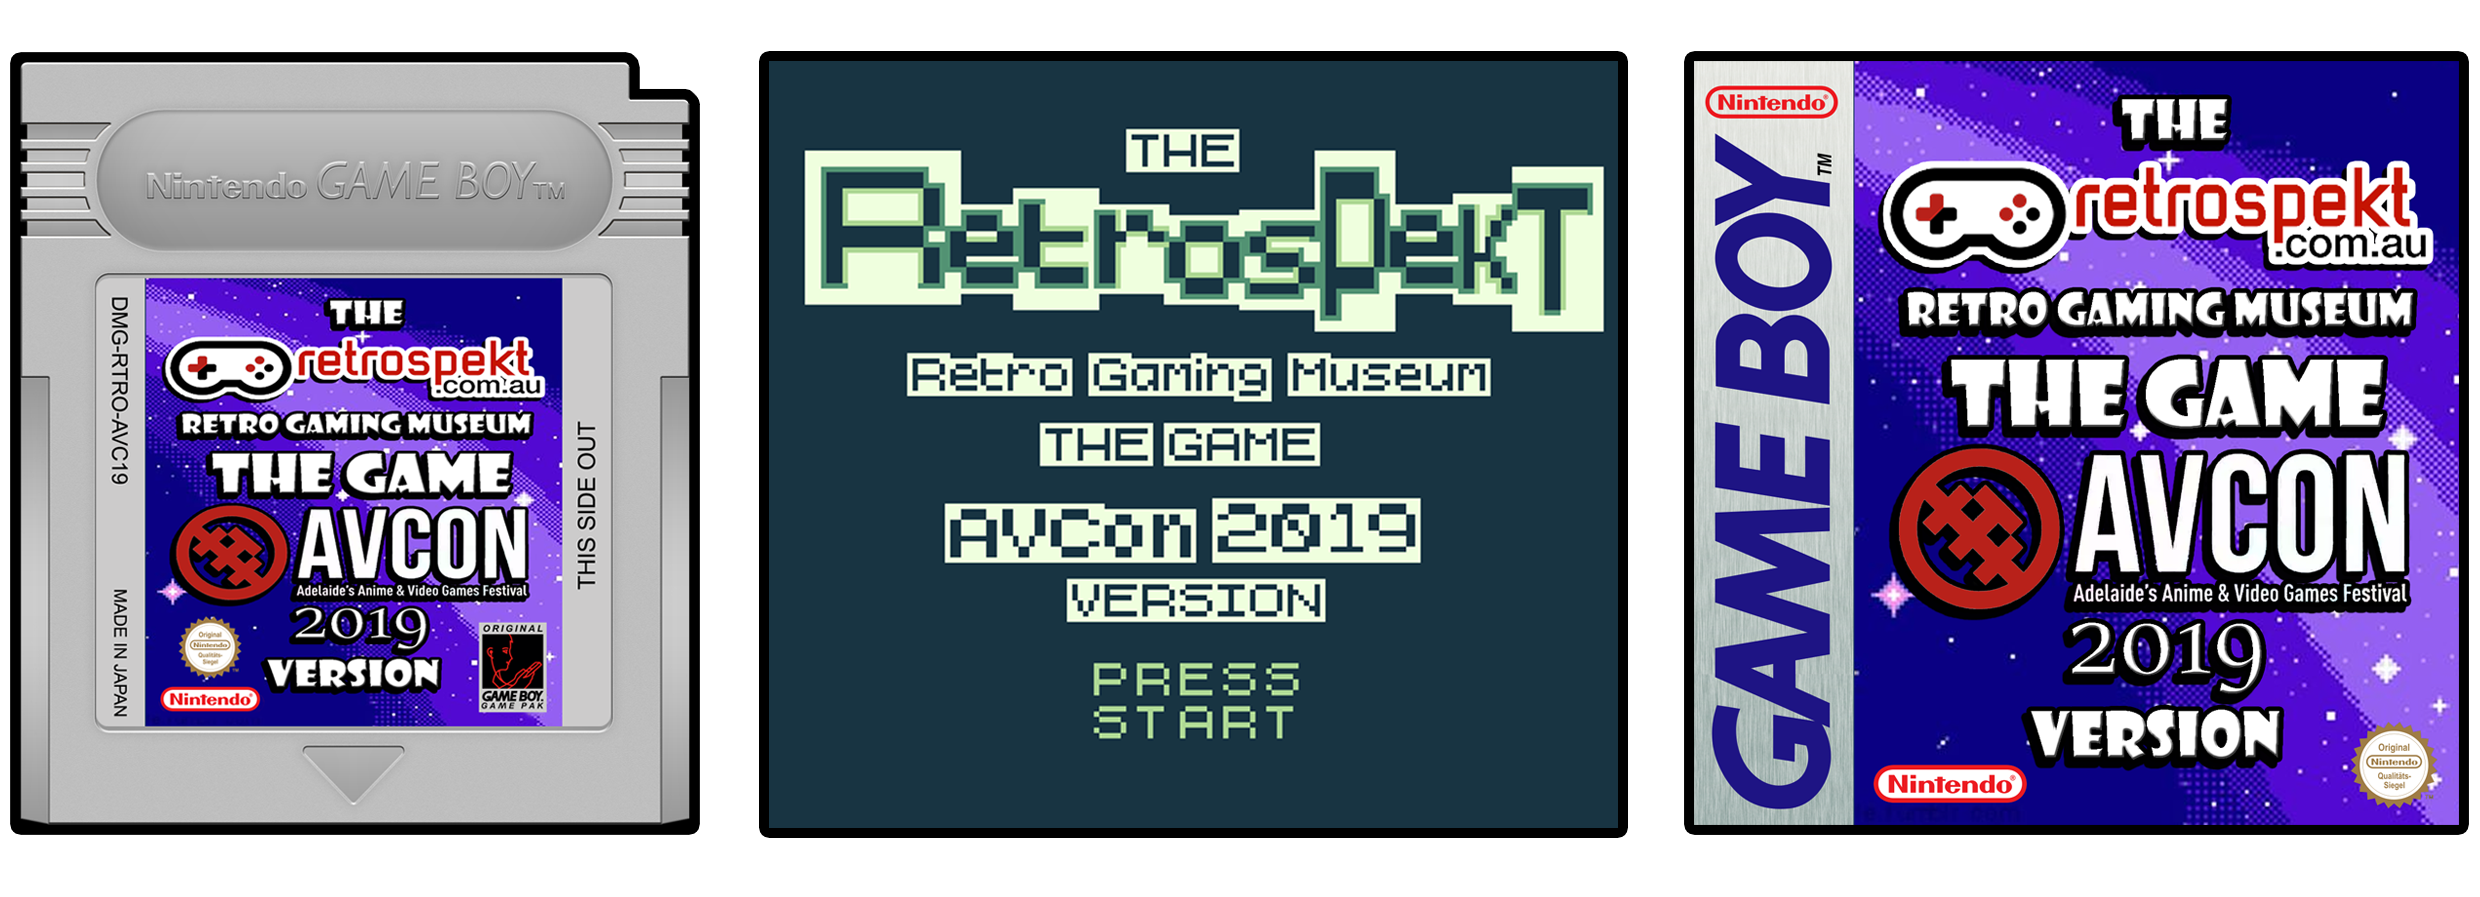 The Retrospekt.com.au Retro Gaming Museum The Game AVCon 2019 Version